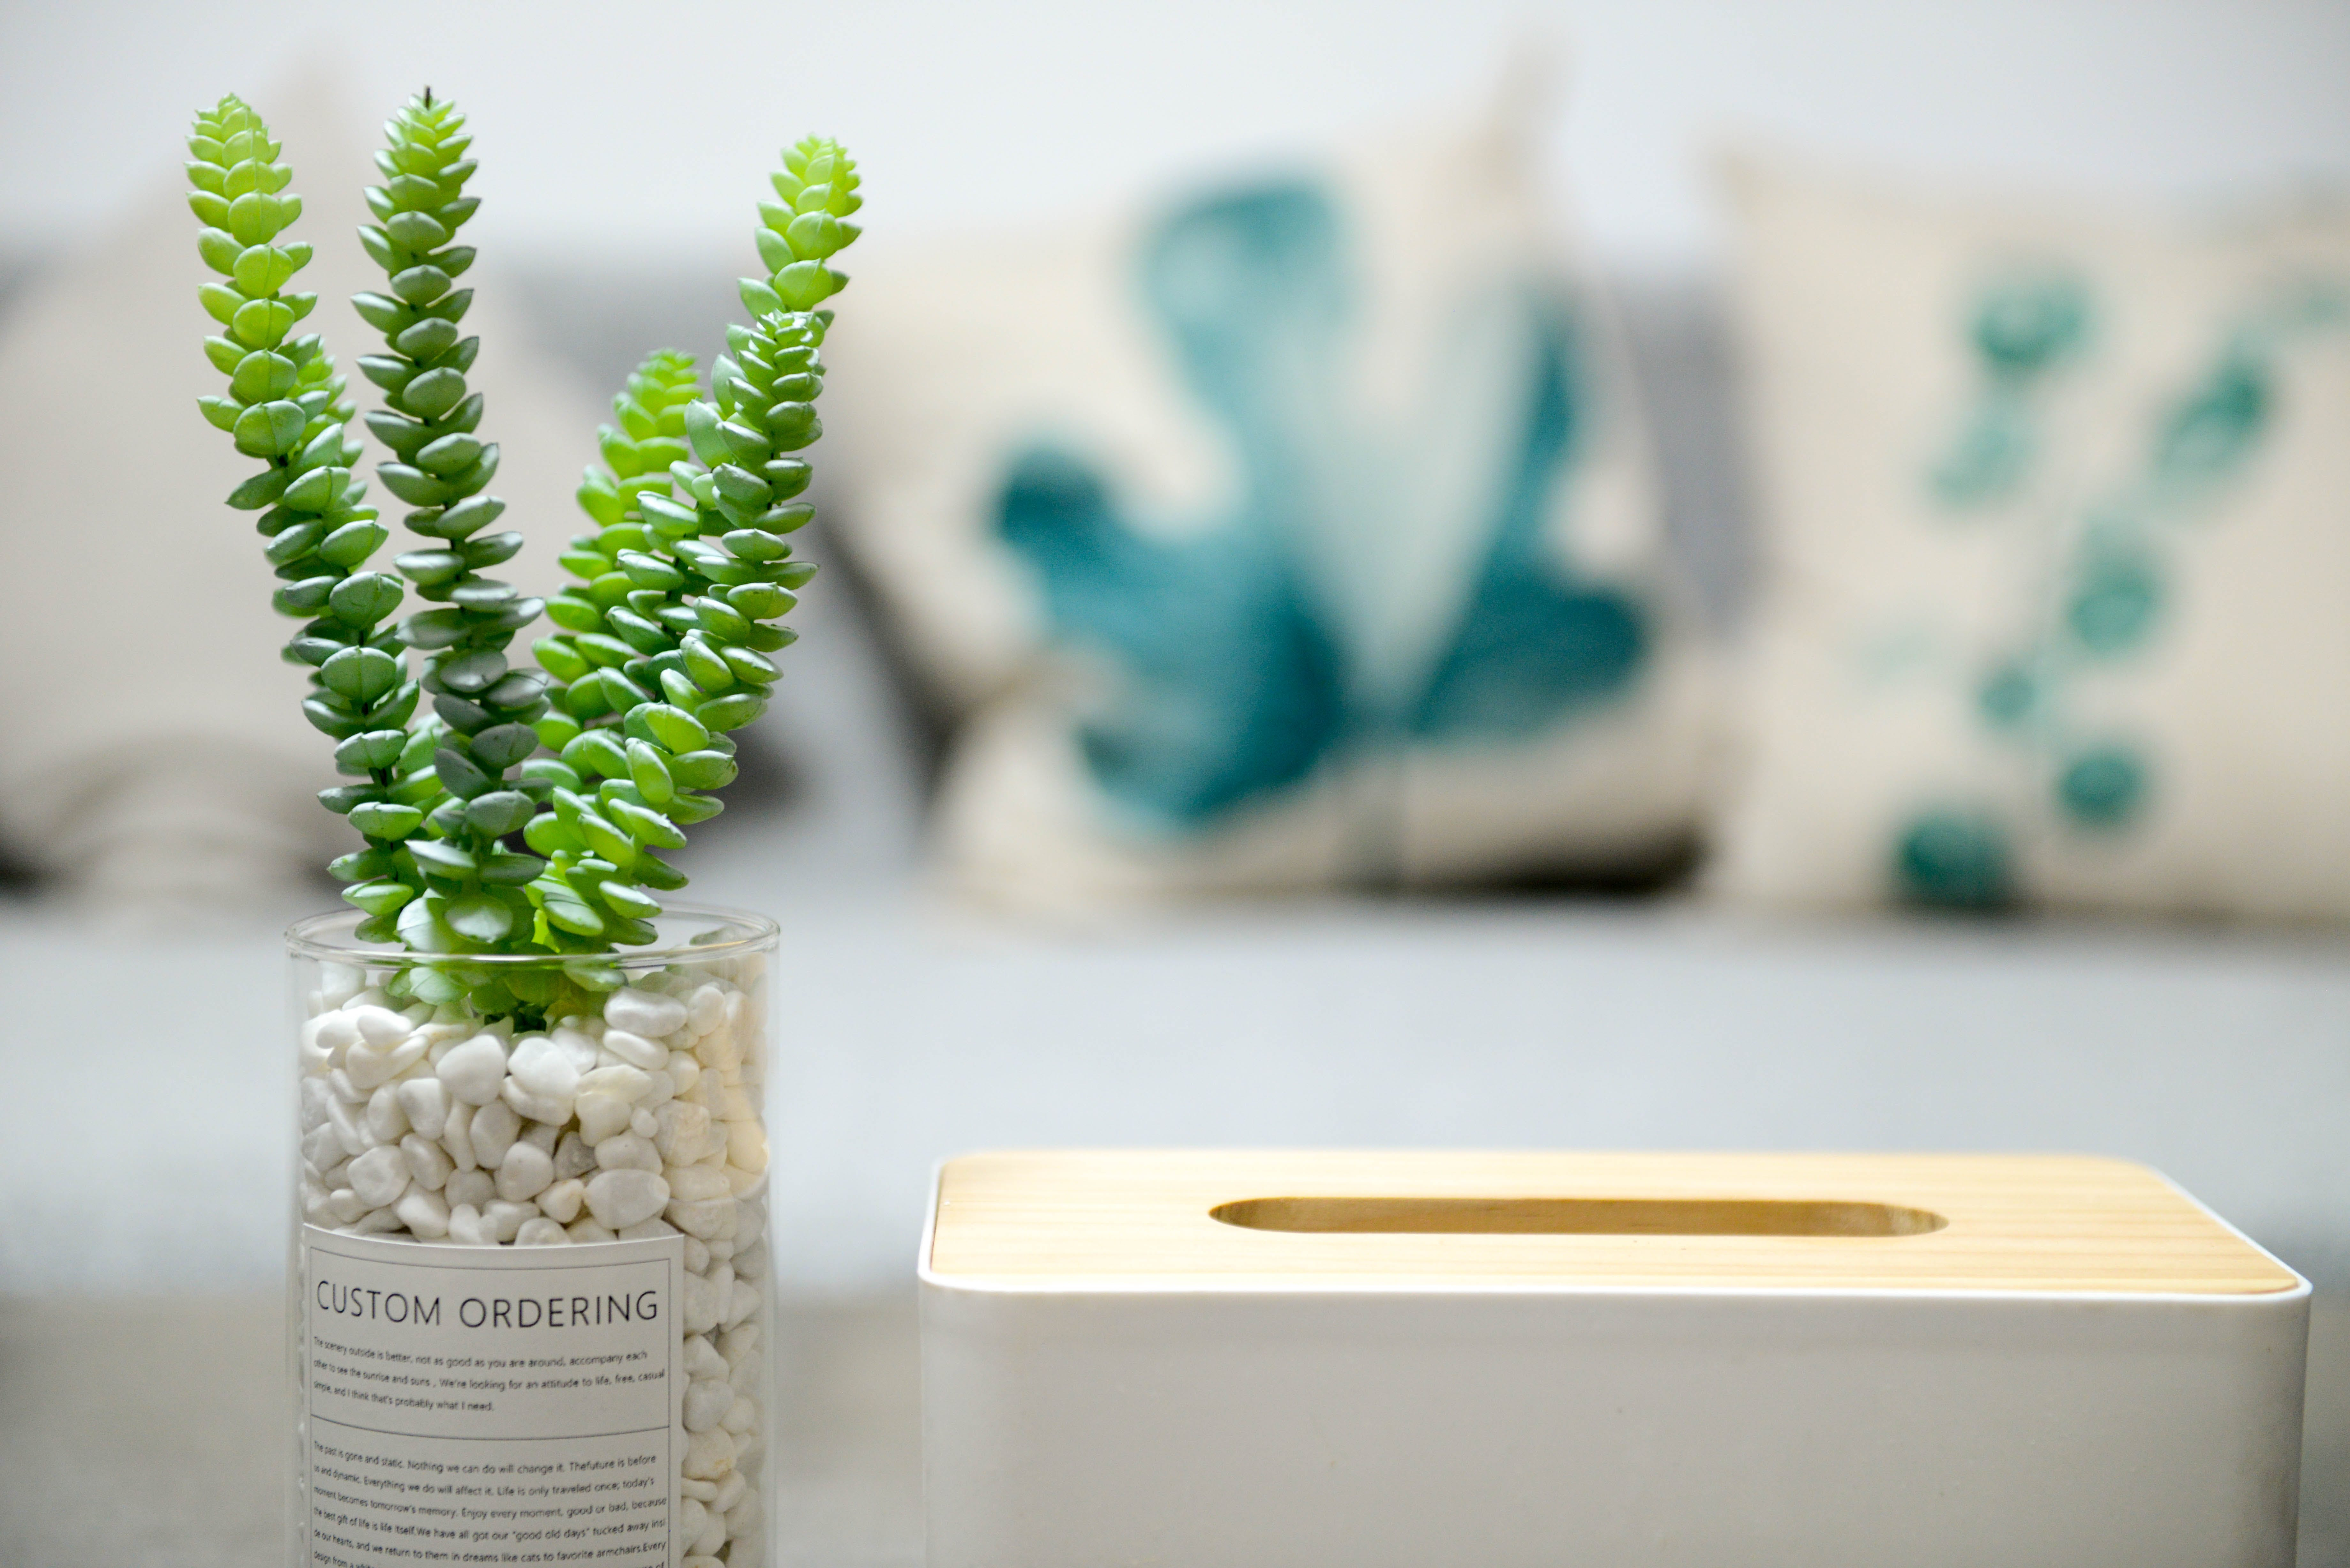 Selective Photo of Green Succulent Plant